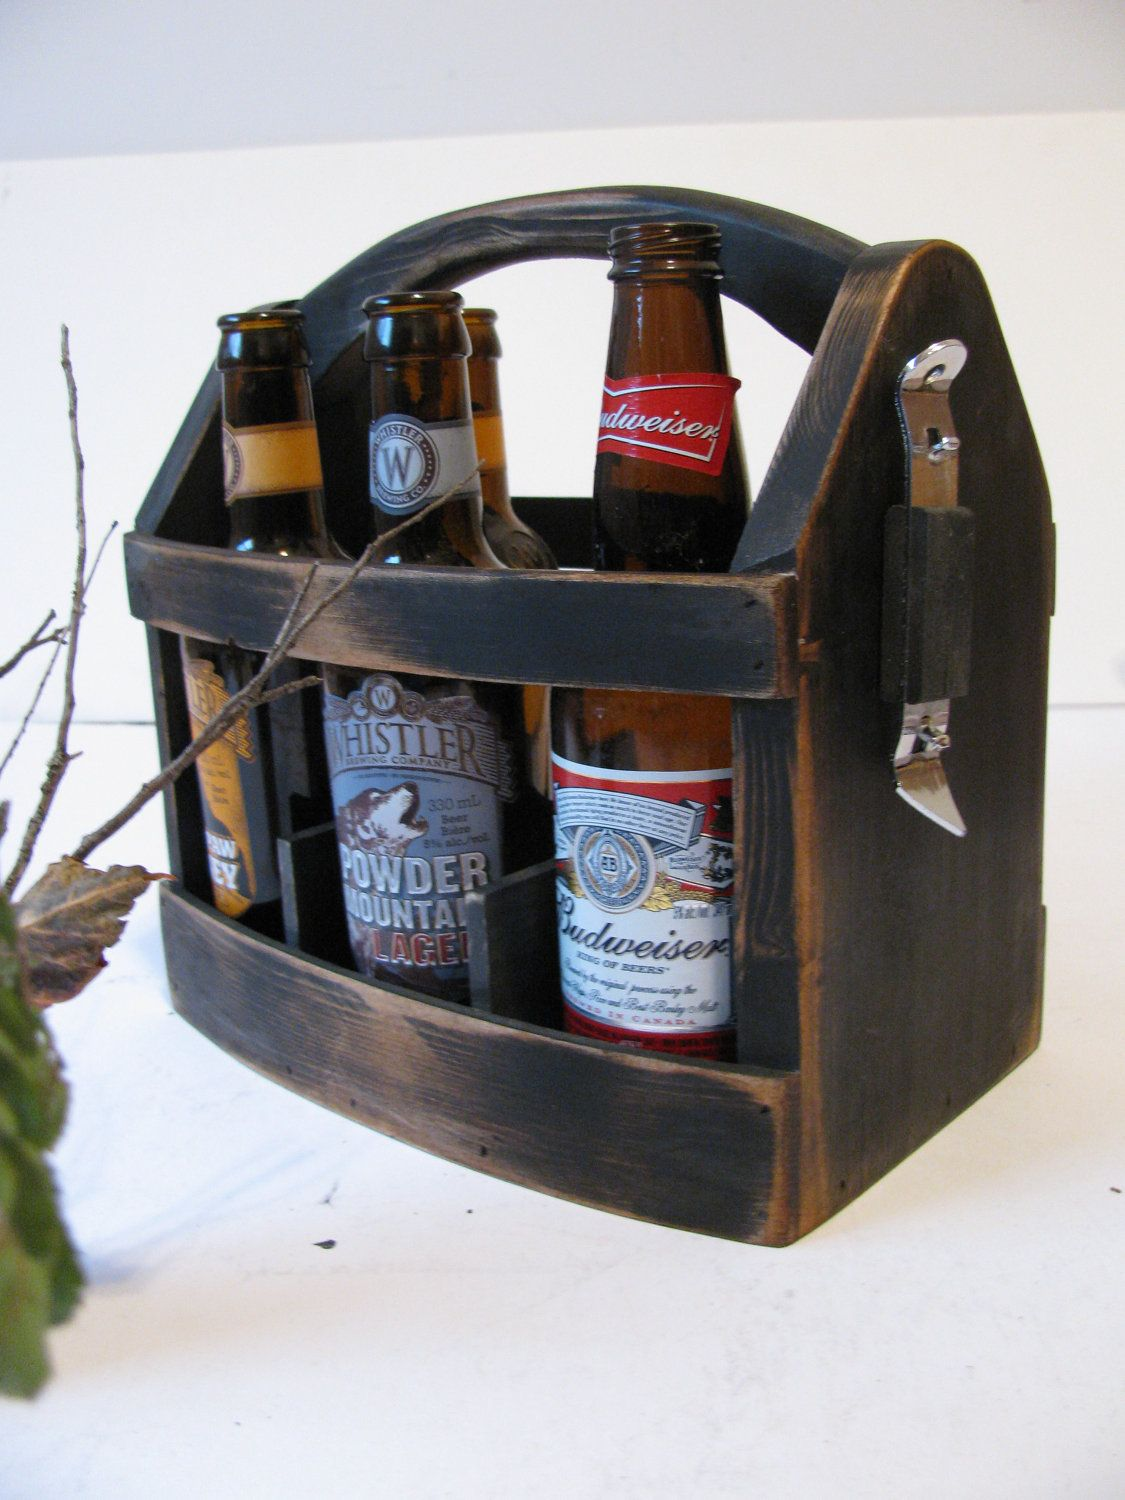 Pin By Kati Welt On Christmas Gift Ideas Beer Wood Beer Box Beer Box Crafts